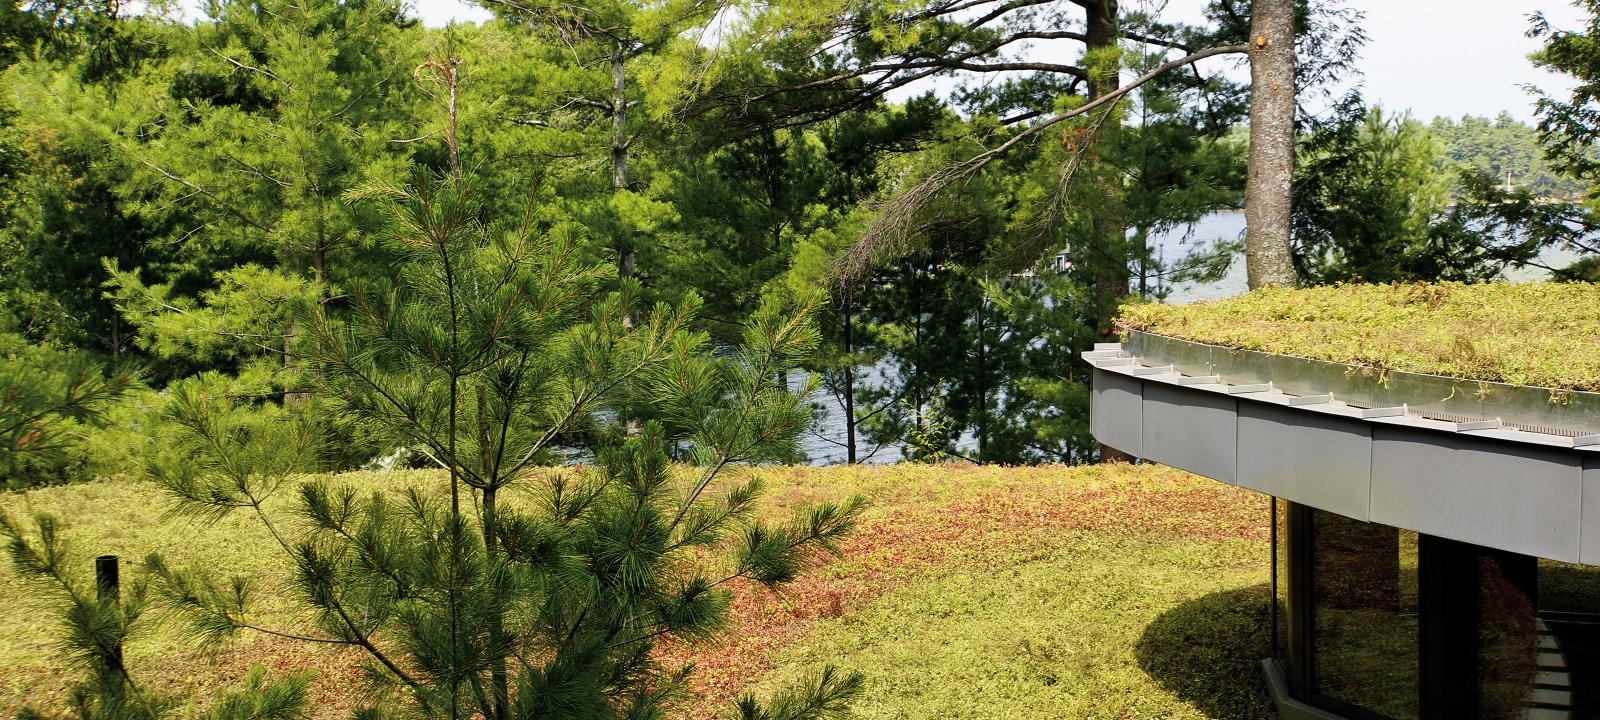 Extensive green roofs in front of pine trees